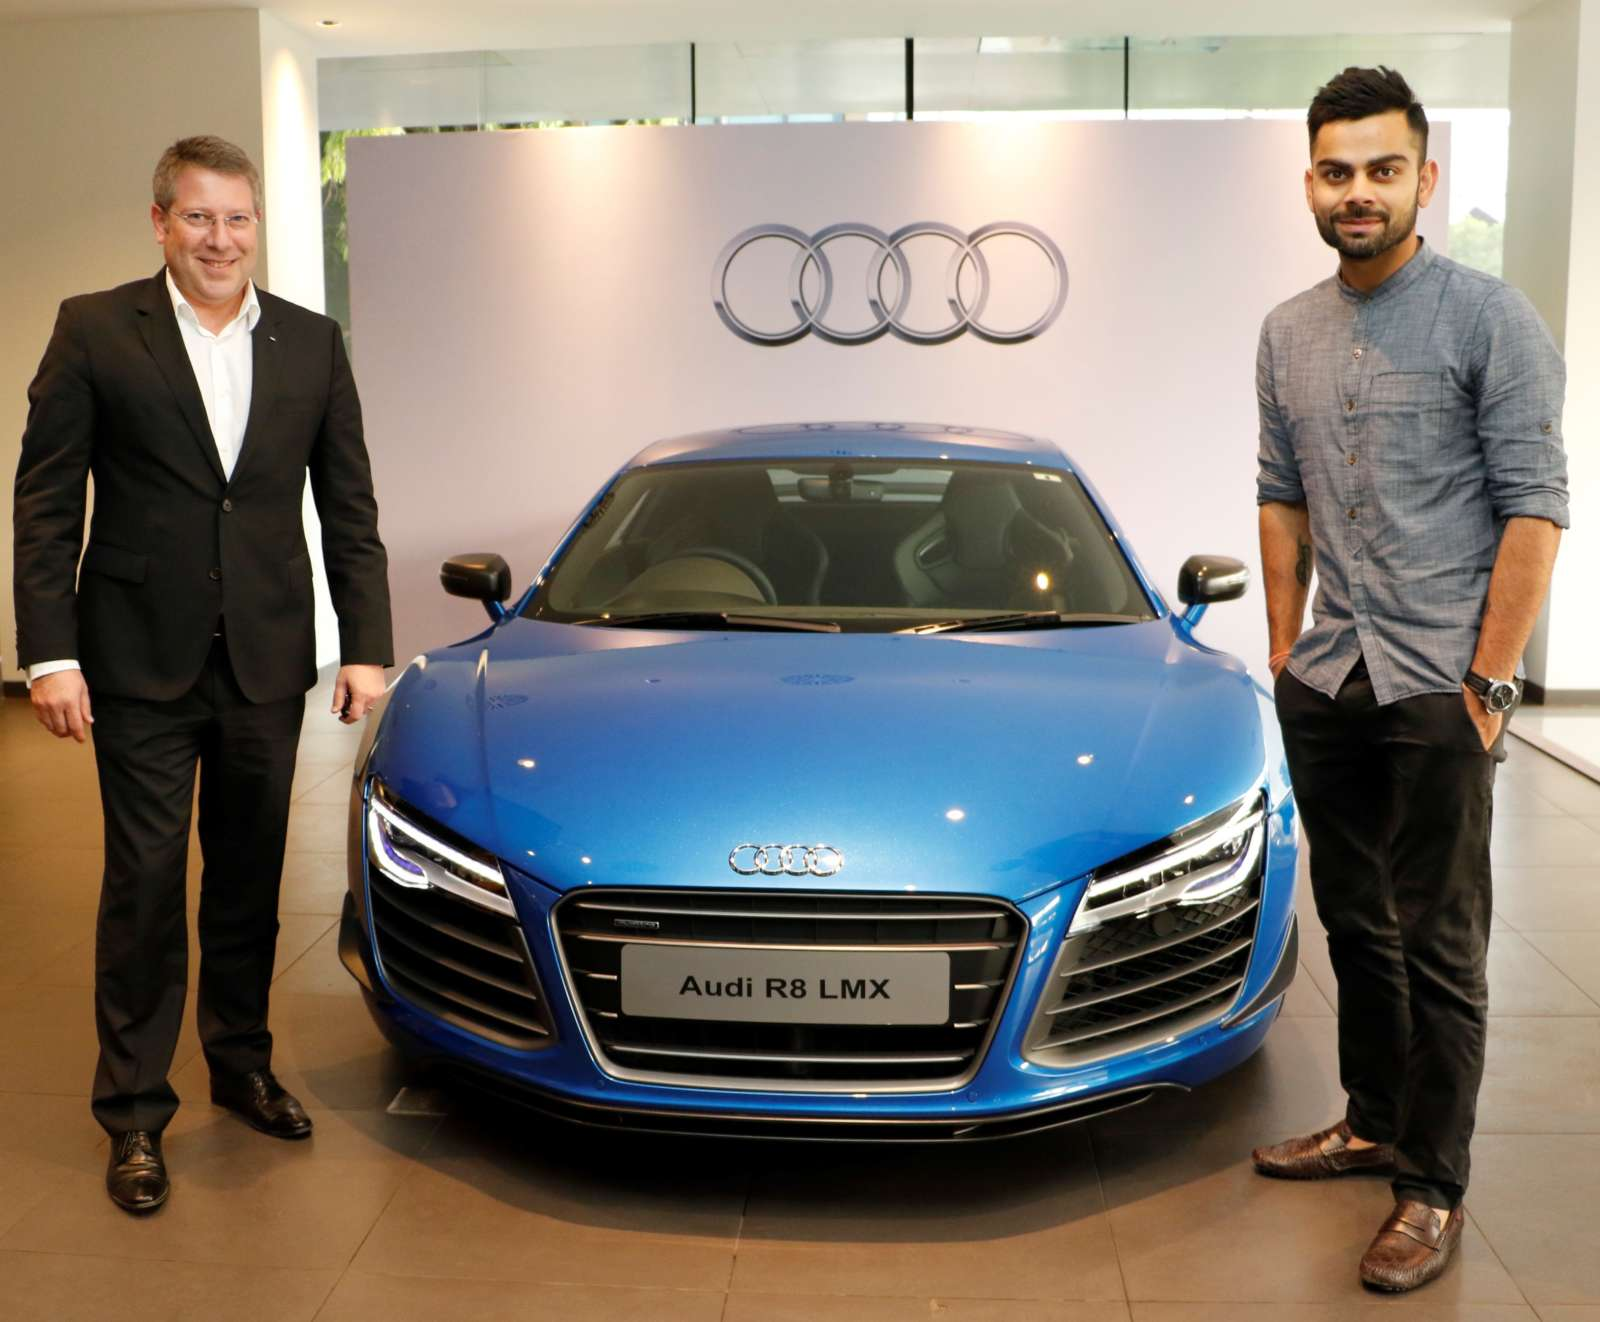 Virat Kohli Gets Himself An Audi R8 Lmx 1 Of 99 Ever Made